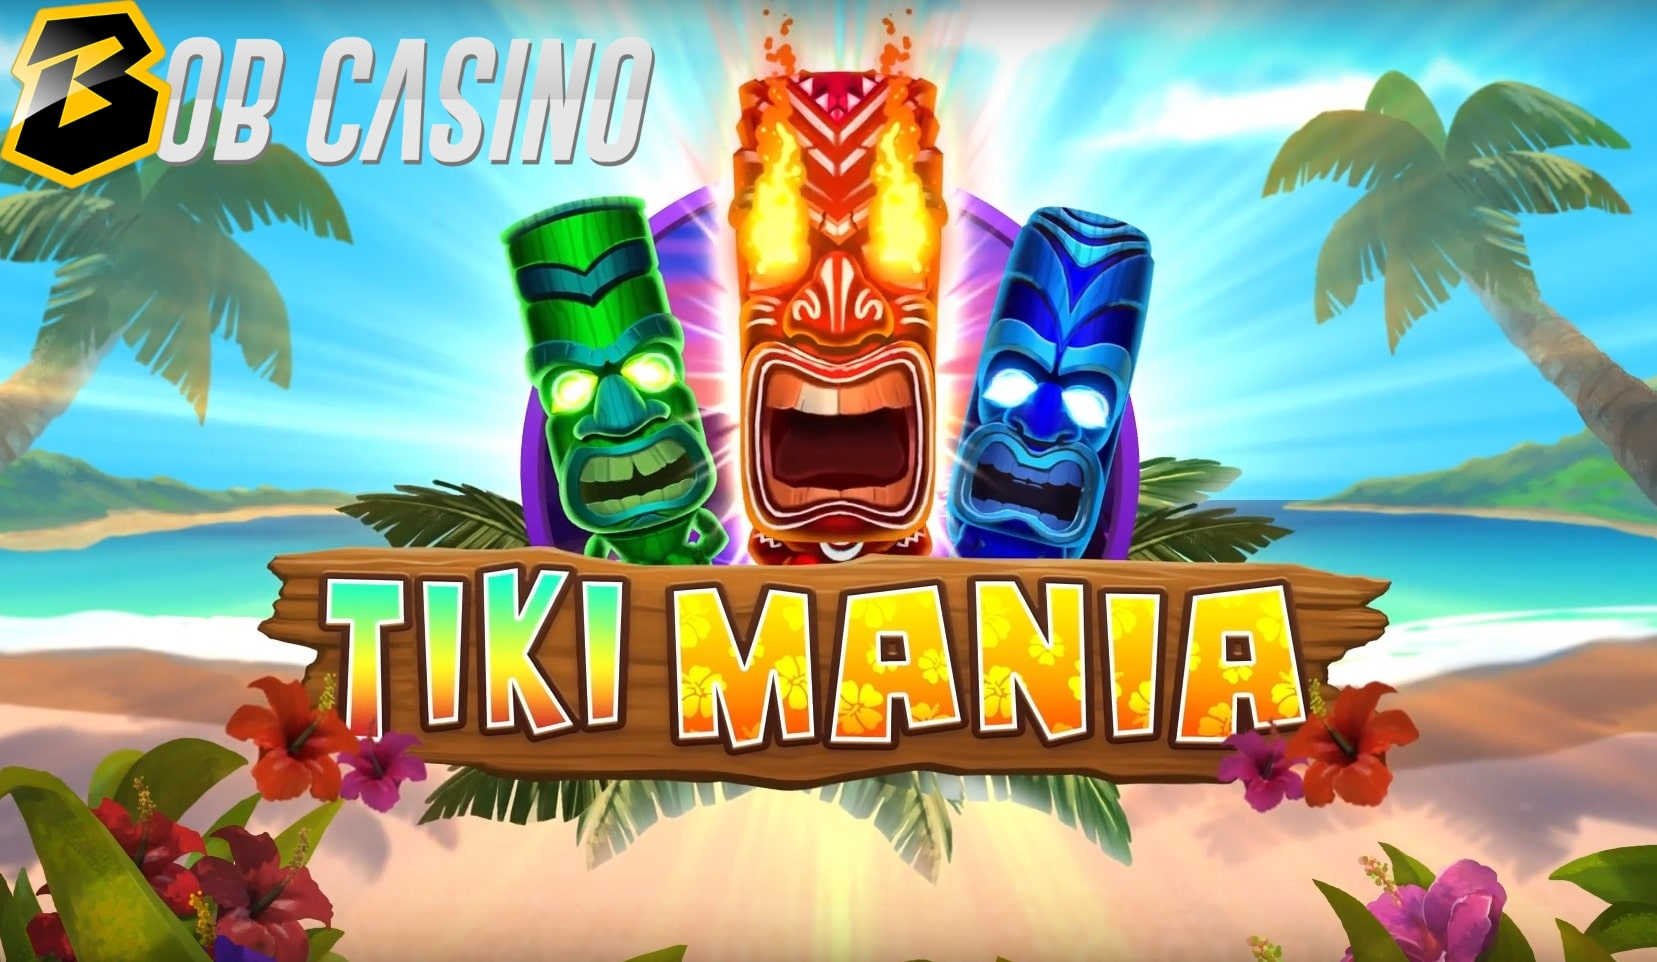 Tiki Mania Video Slot Review (Fortune Factory Studios & Microgaming)